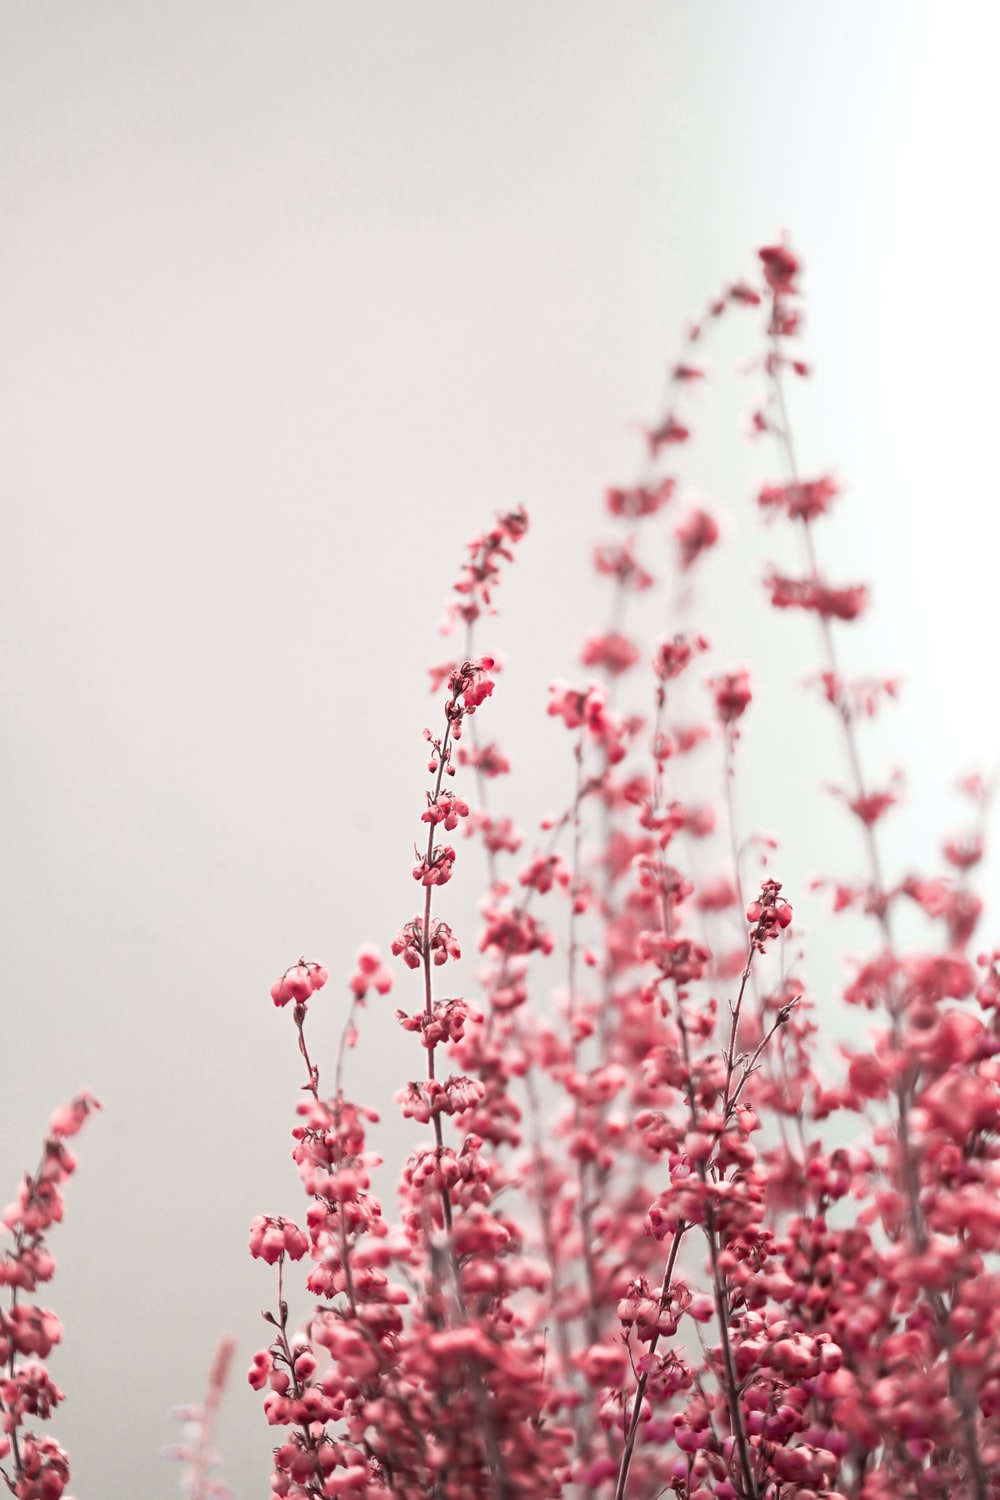 Pink Aesthetic Pictures Download Free Images On Unsplash This post may contain affiliate links, which means that i get a commission if you decide to make a purchase. pink aesthetic pictures download free